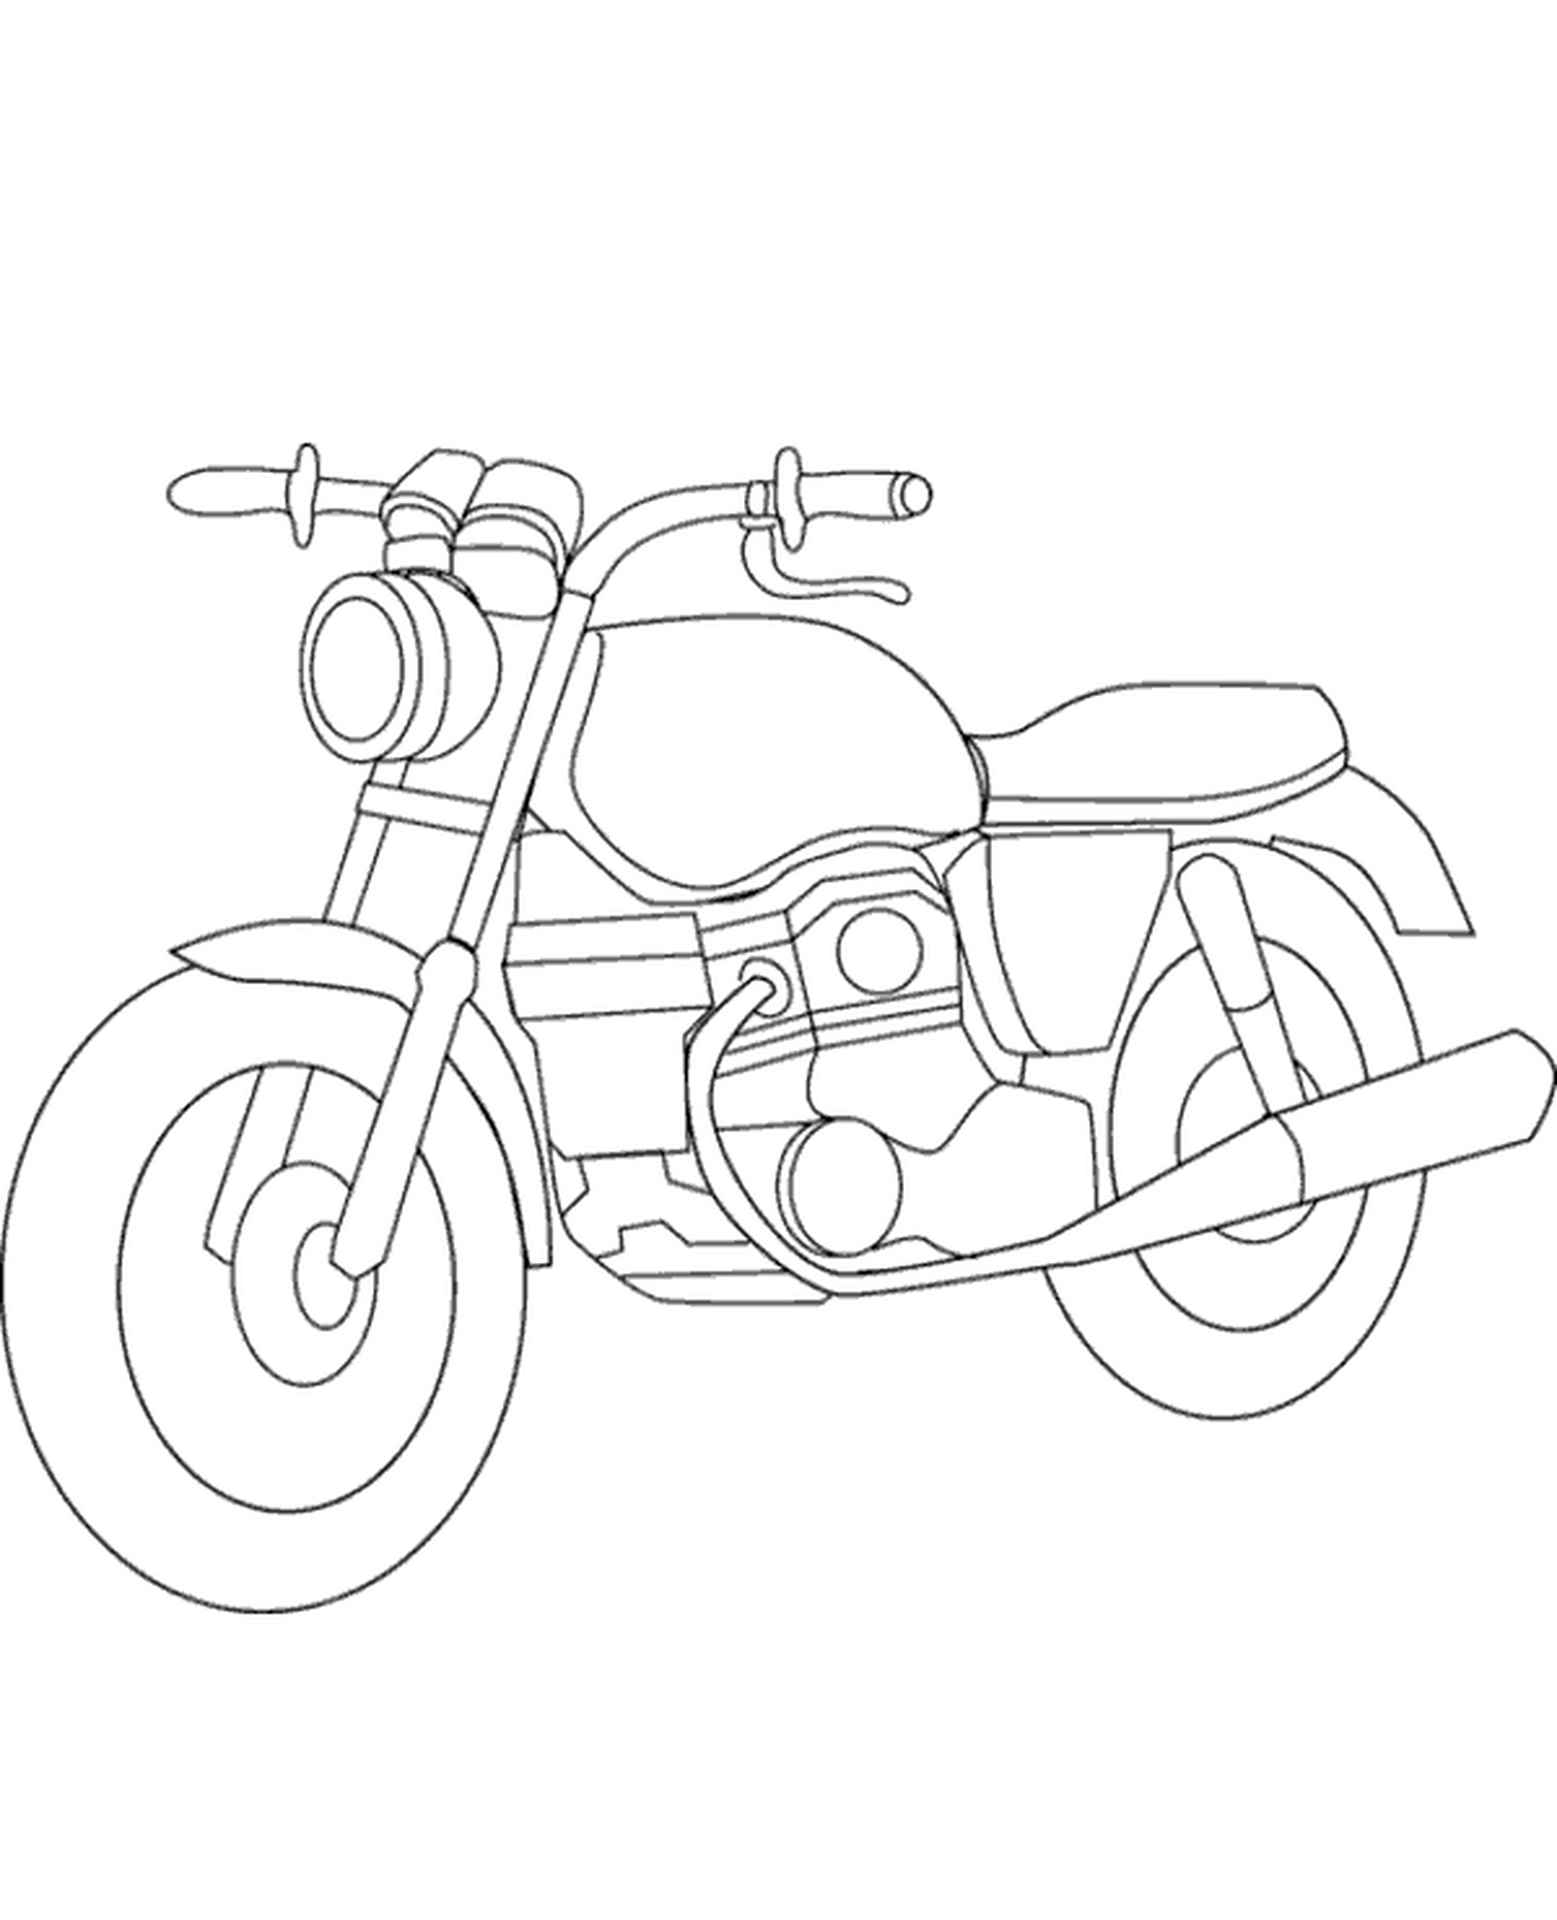 Easy Motorbike To Color